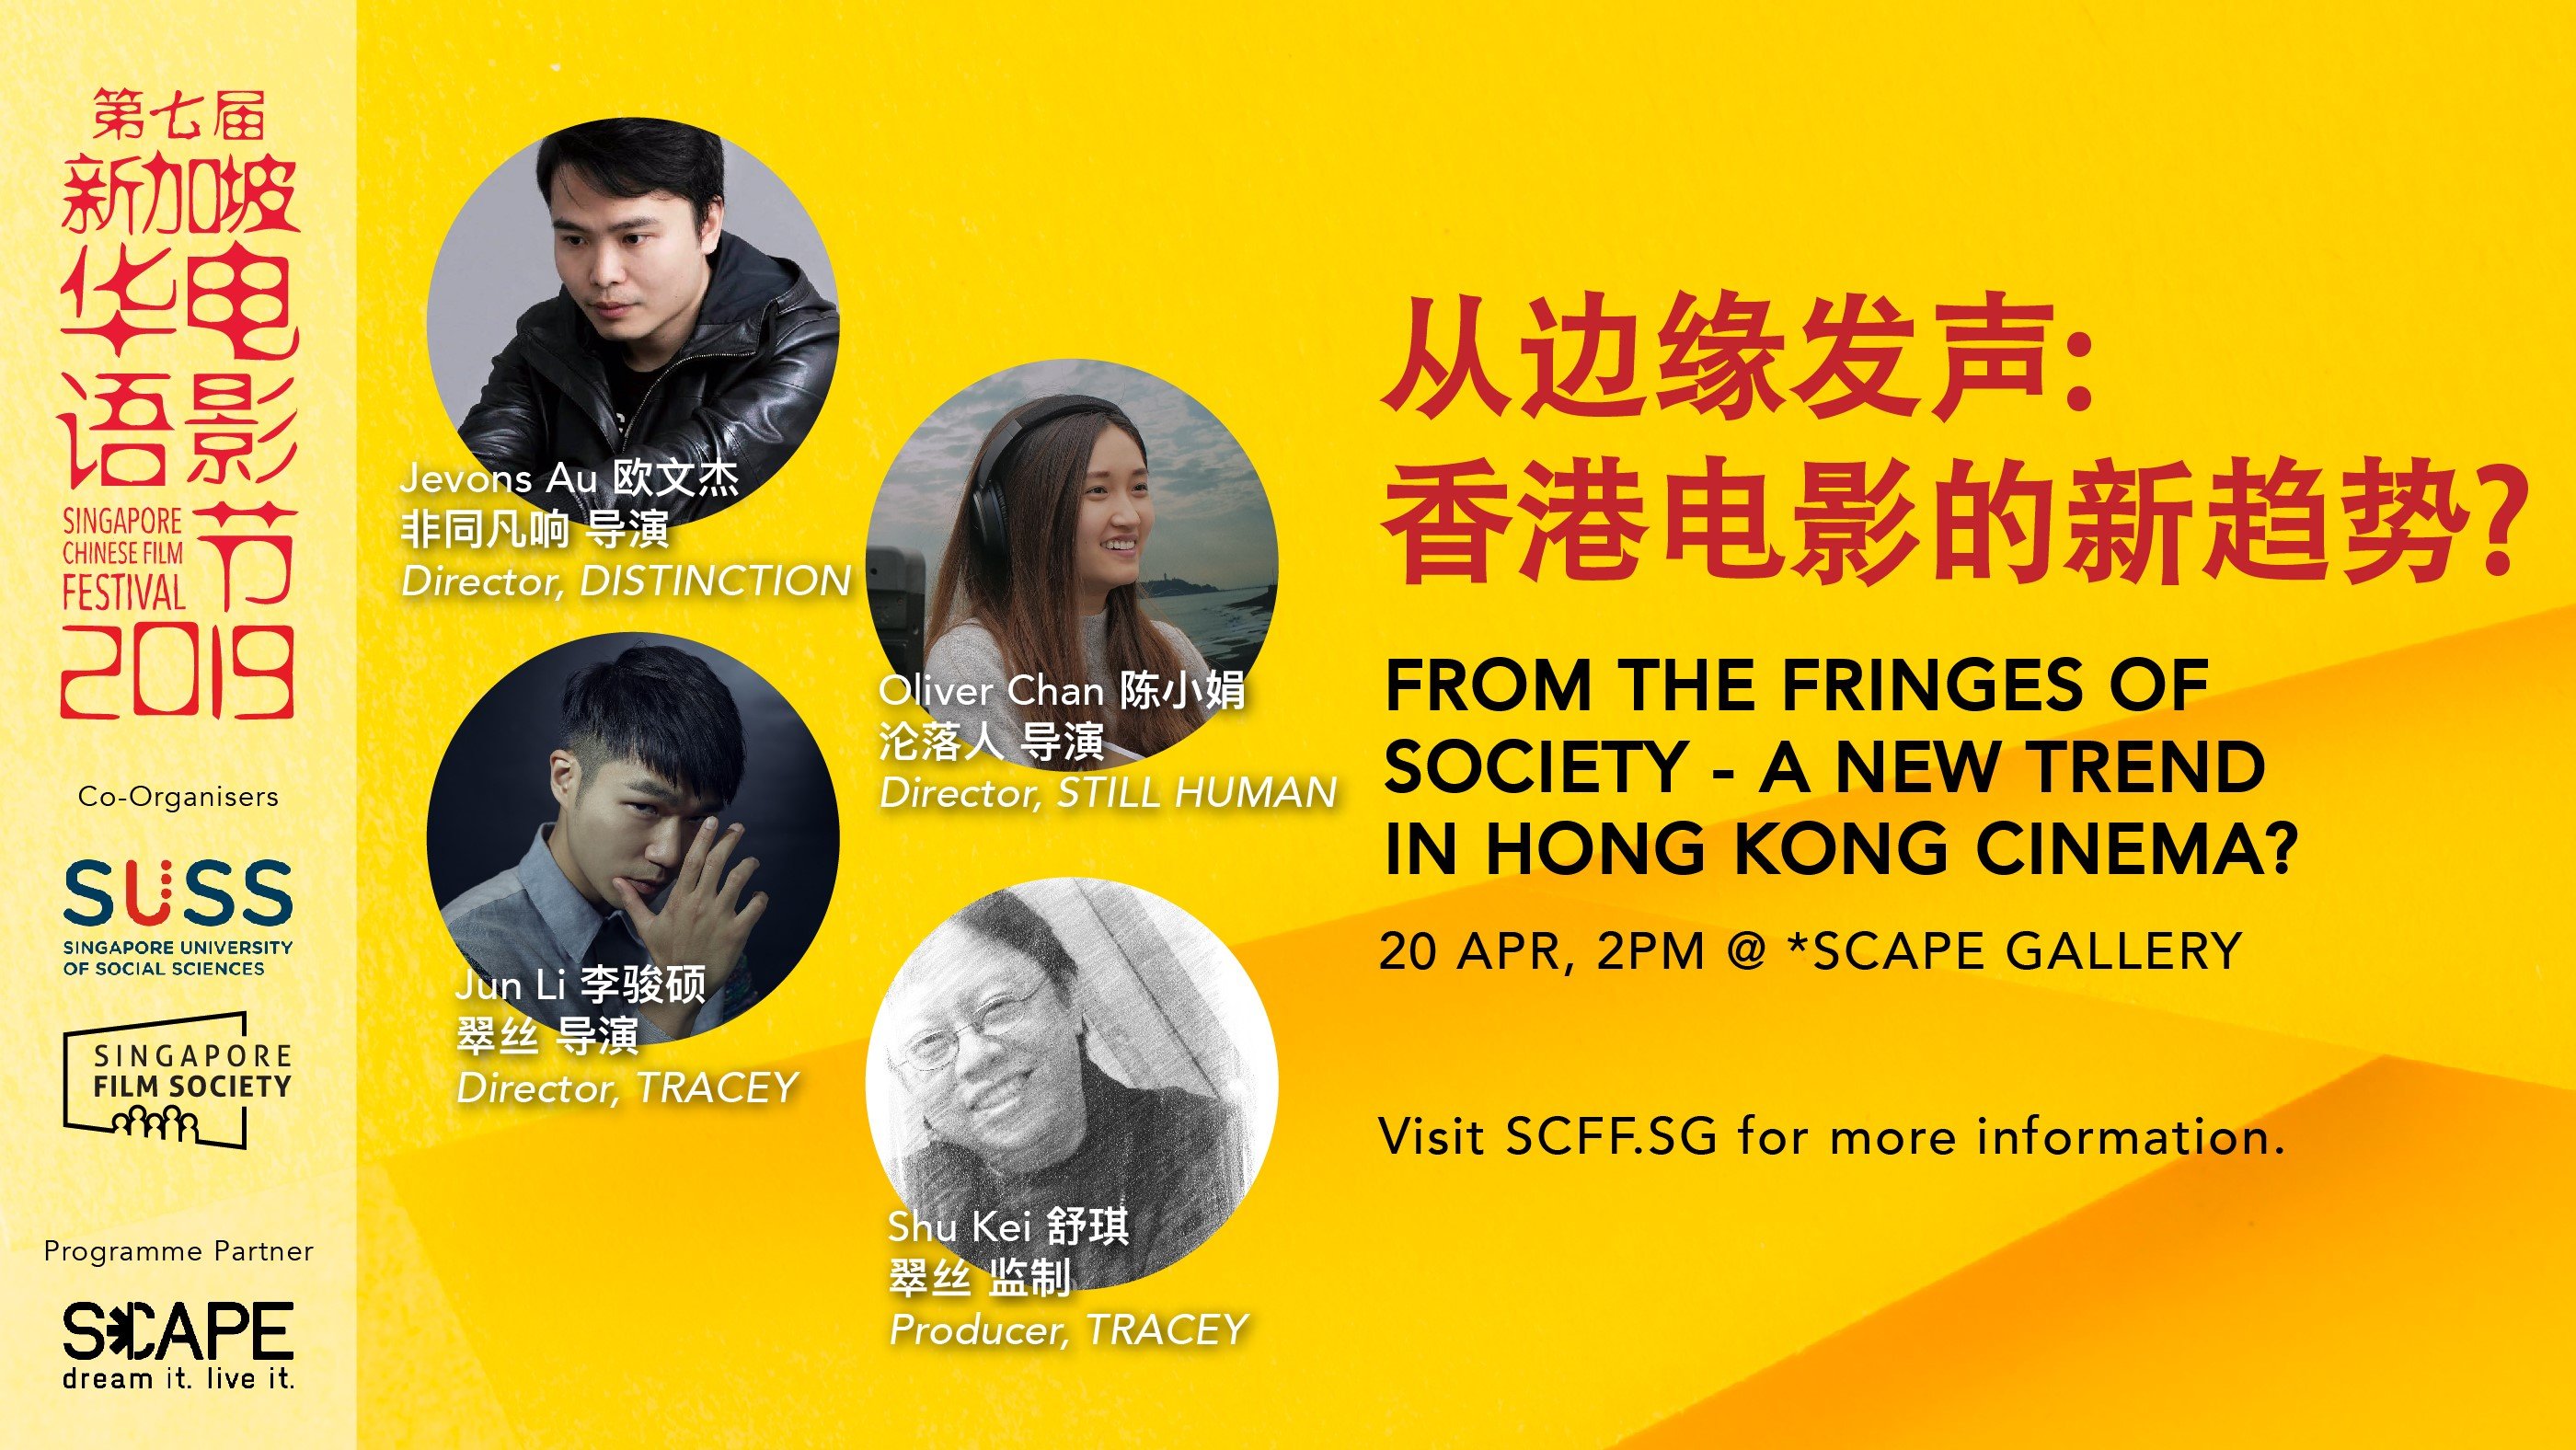 New Trends In Hong Kong Cinema 700x394